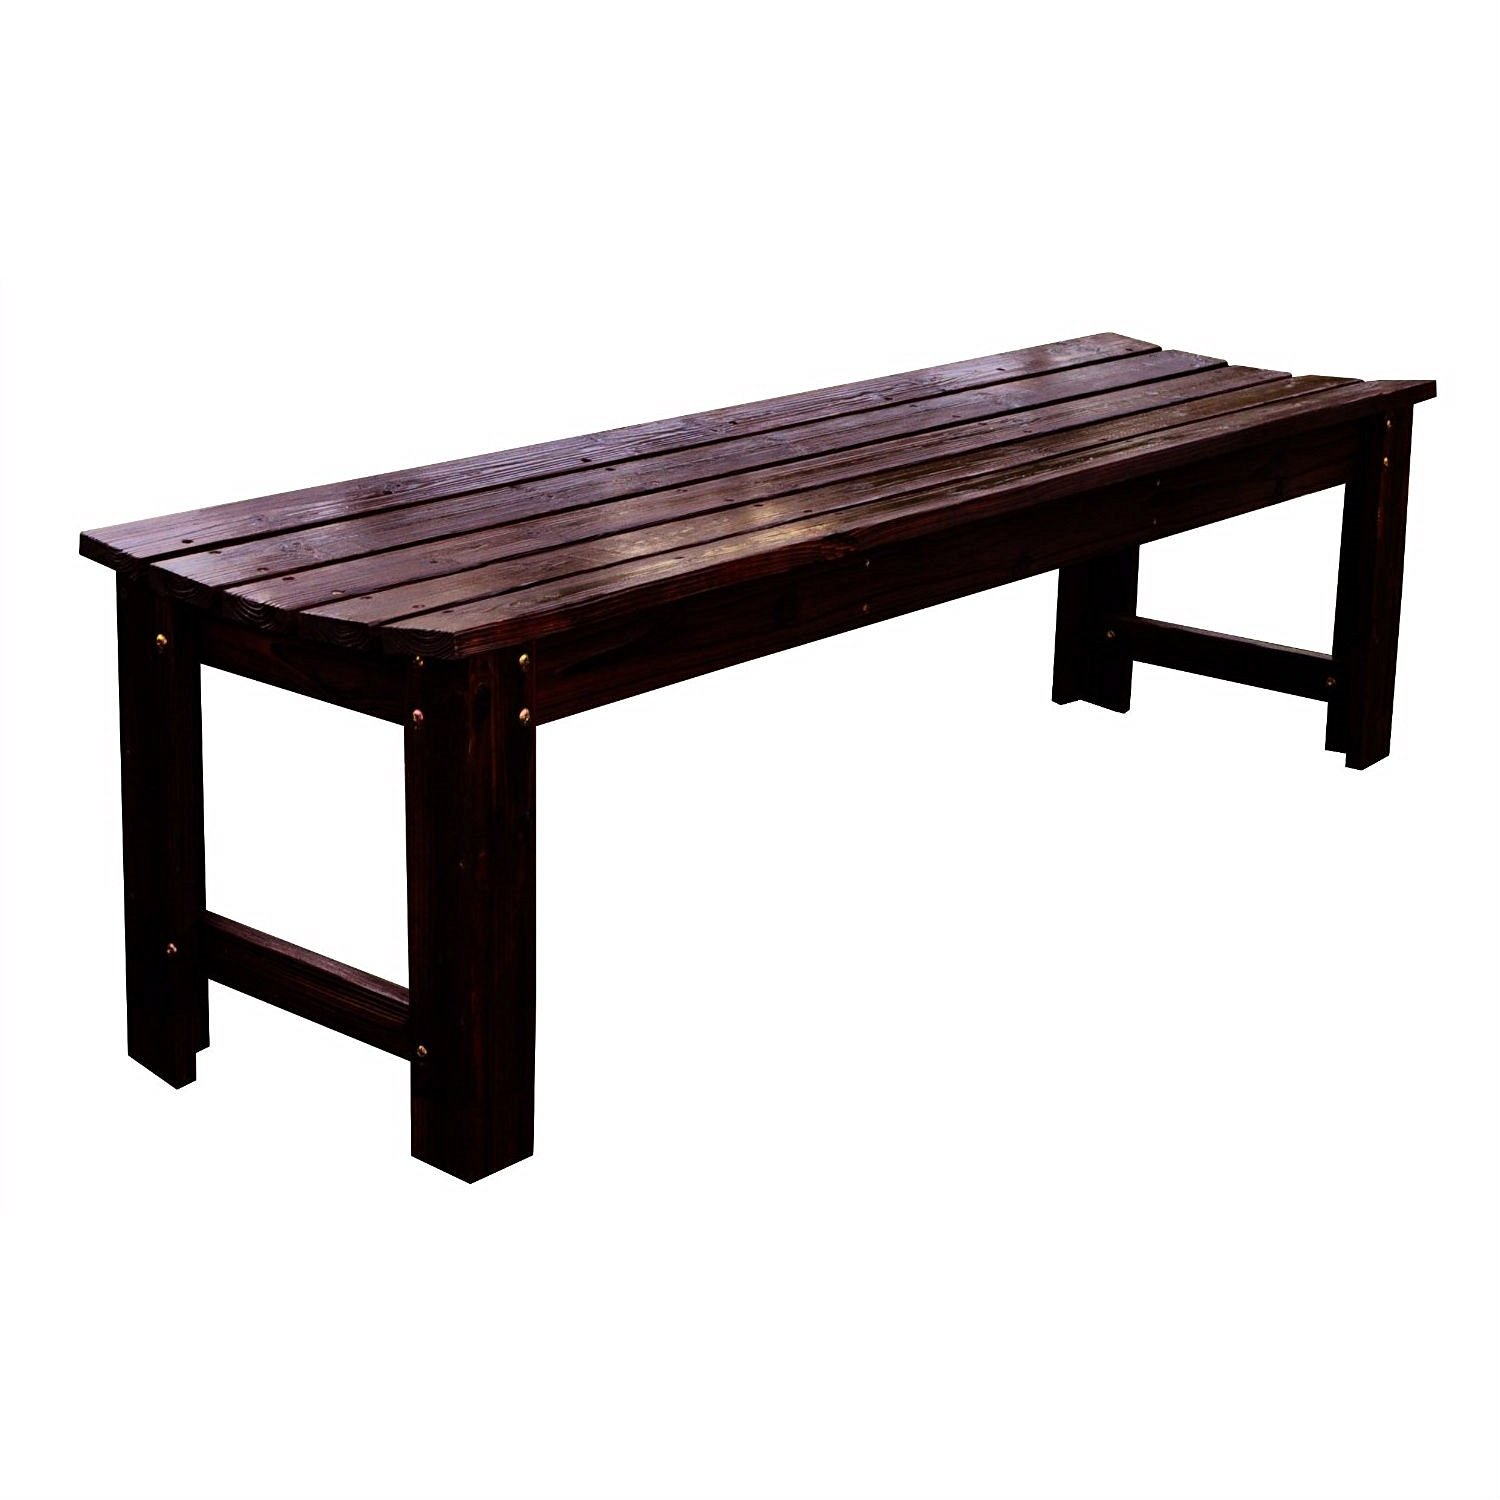 Awesome Cheap Patio Wood Bench Find Patio Wood Bench Deals On Line Inzonedesignstudio Interior Chair Design Inzonedesignstudiocom